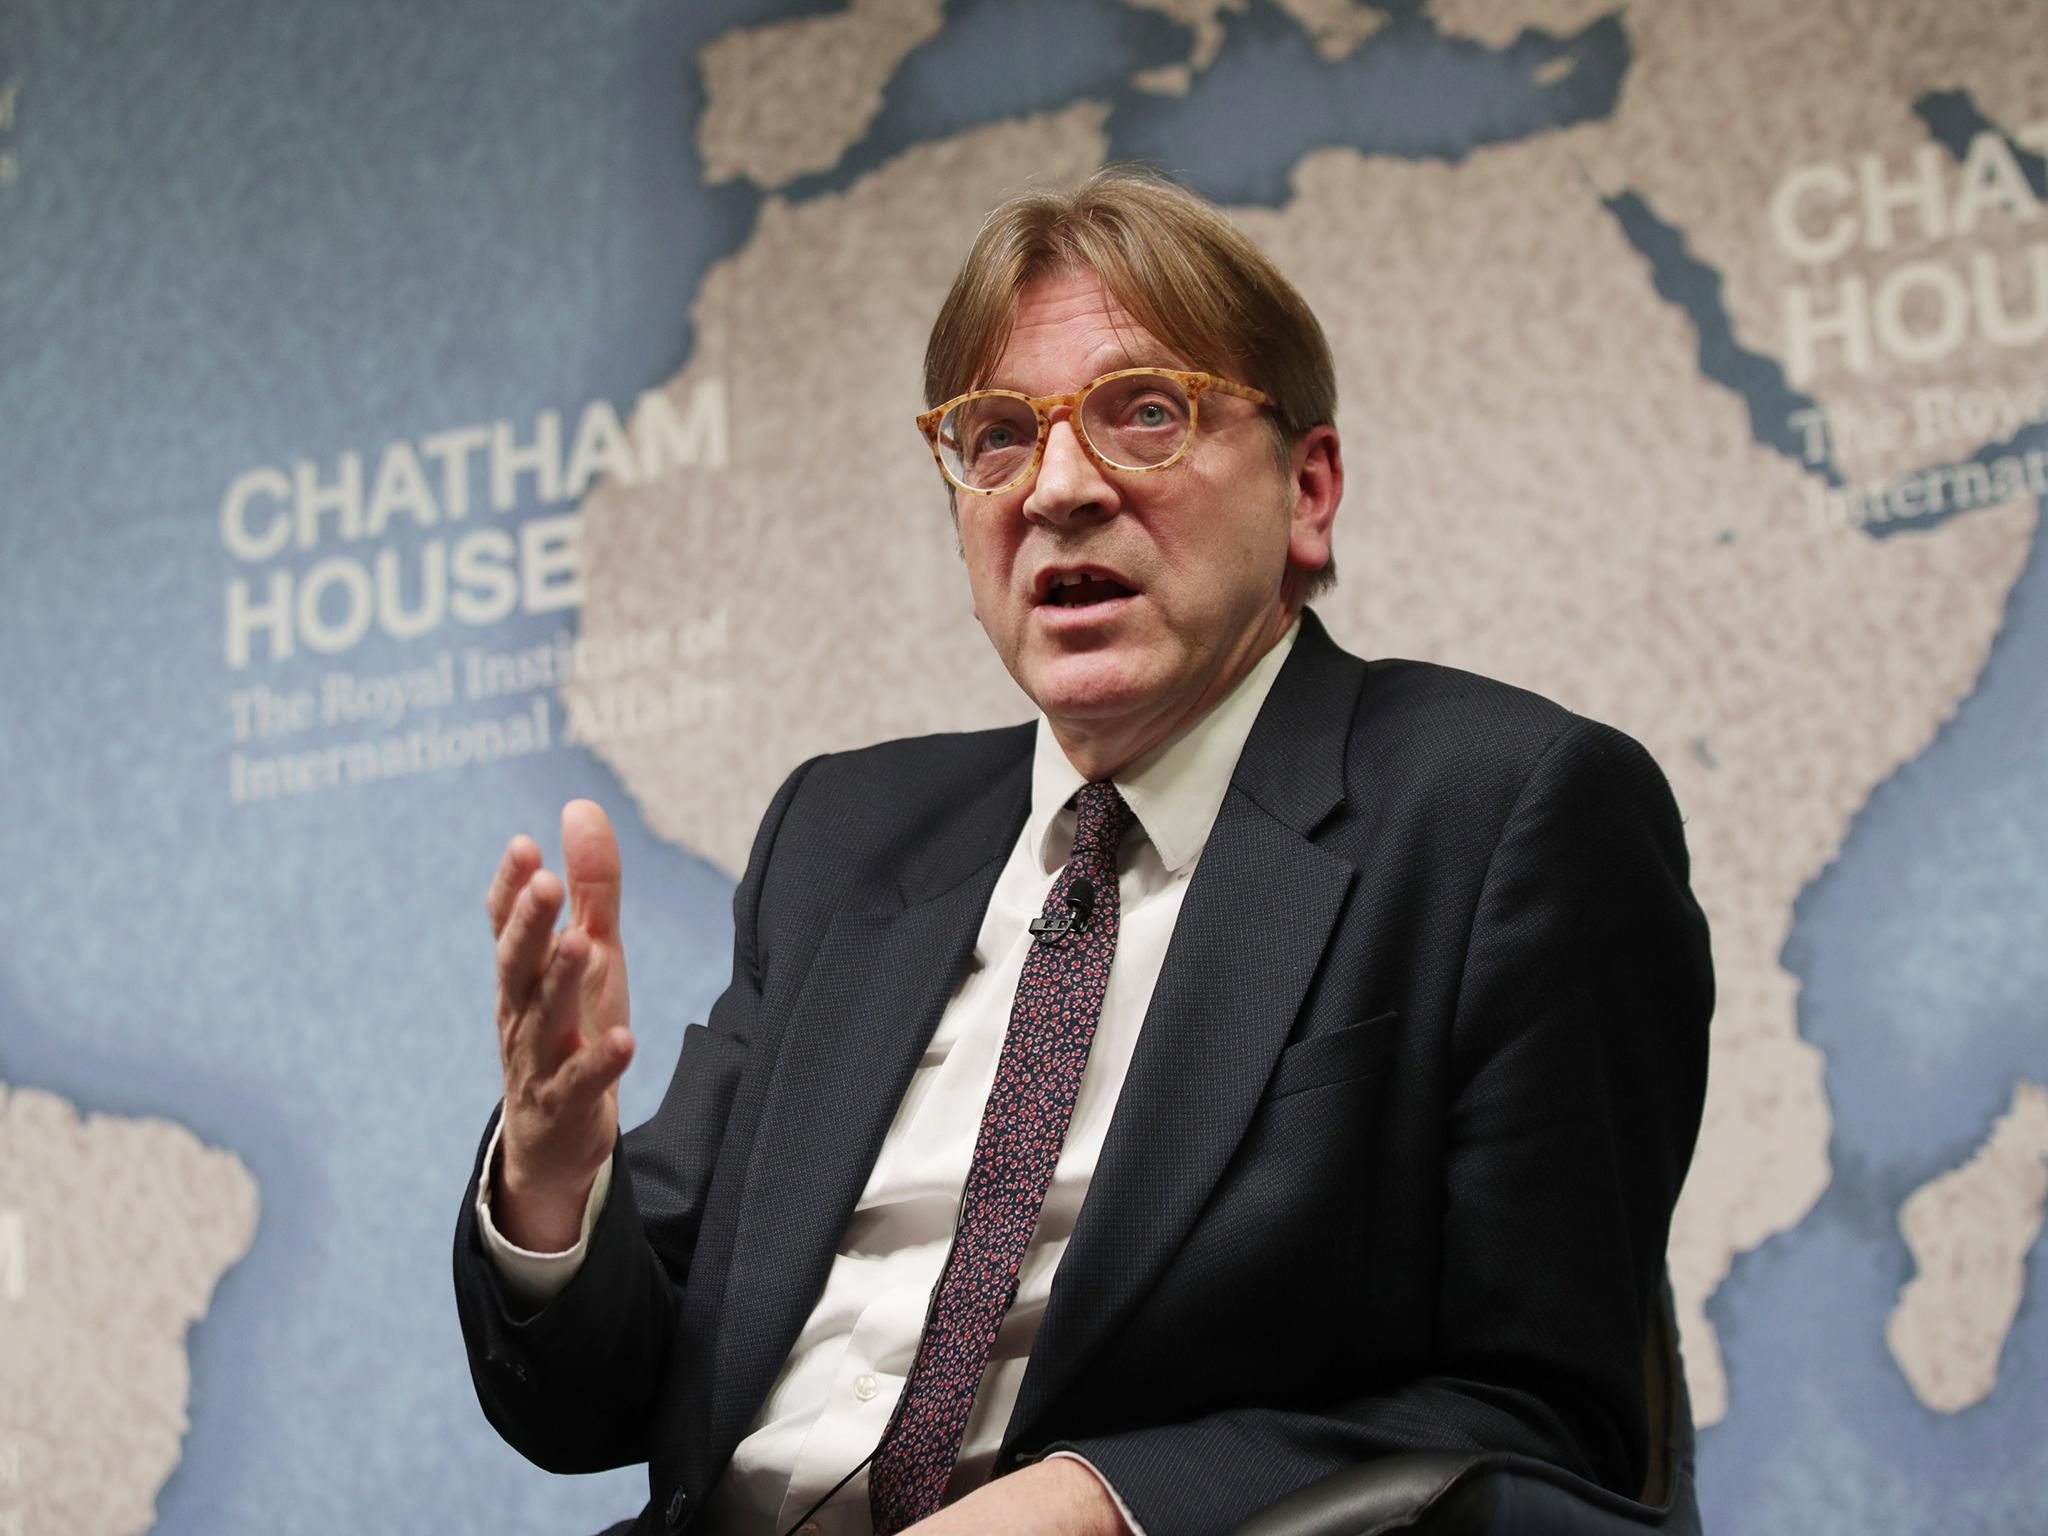 Brexit: Theresa May's plan for EU migrant registry shot down by Guy Verhofstadt